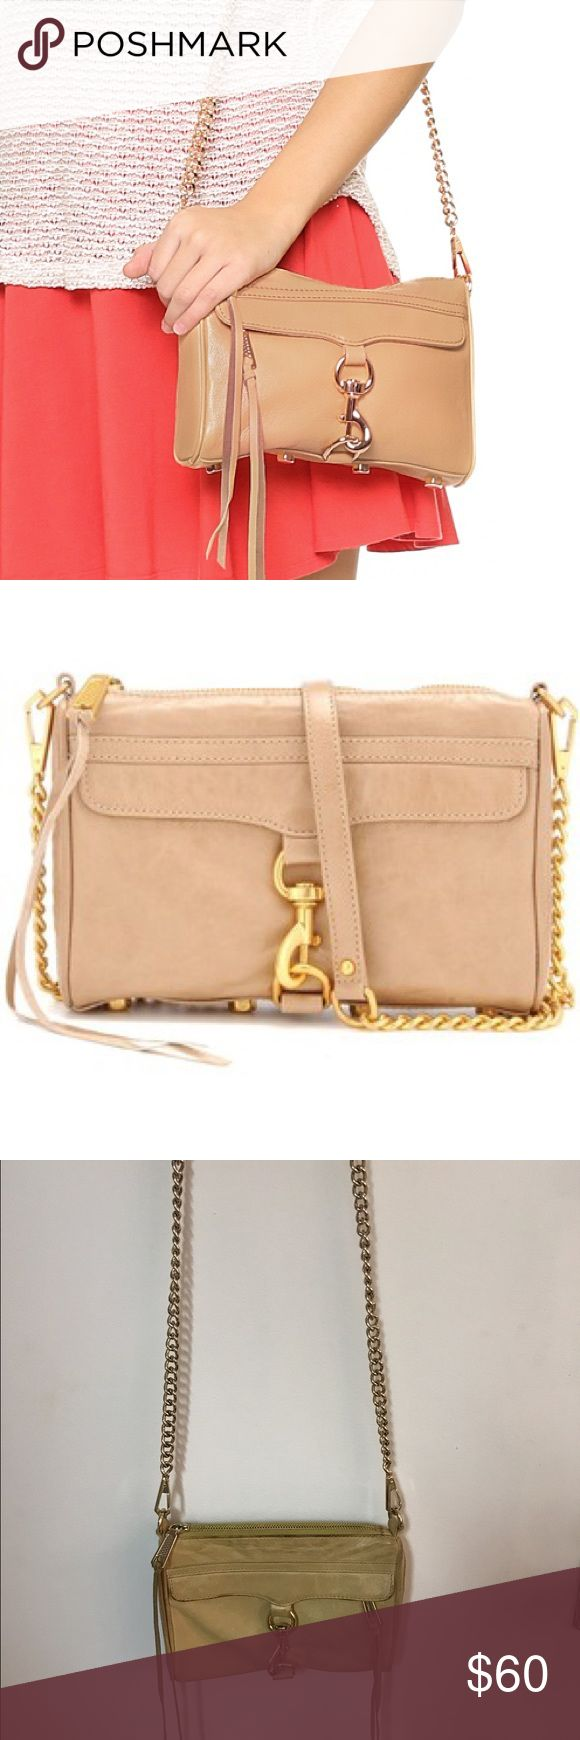 Rebecca Minkoff Mini Mac Chain Bag in Taupe Rebecca Minkoff Mini Mac Chain Bag in Taupe 🌟 Offers accepted! 🌟 Bundles accepted! 🌟 15% off 2+ items ❌ trades ❌ PayPal Rebecca Minkoff Bags Crossbody Bags